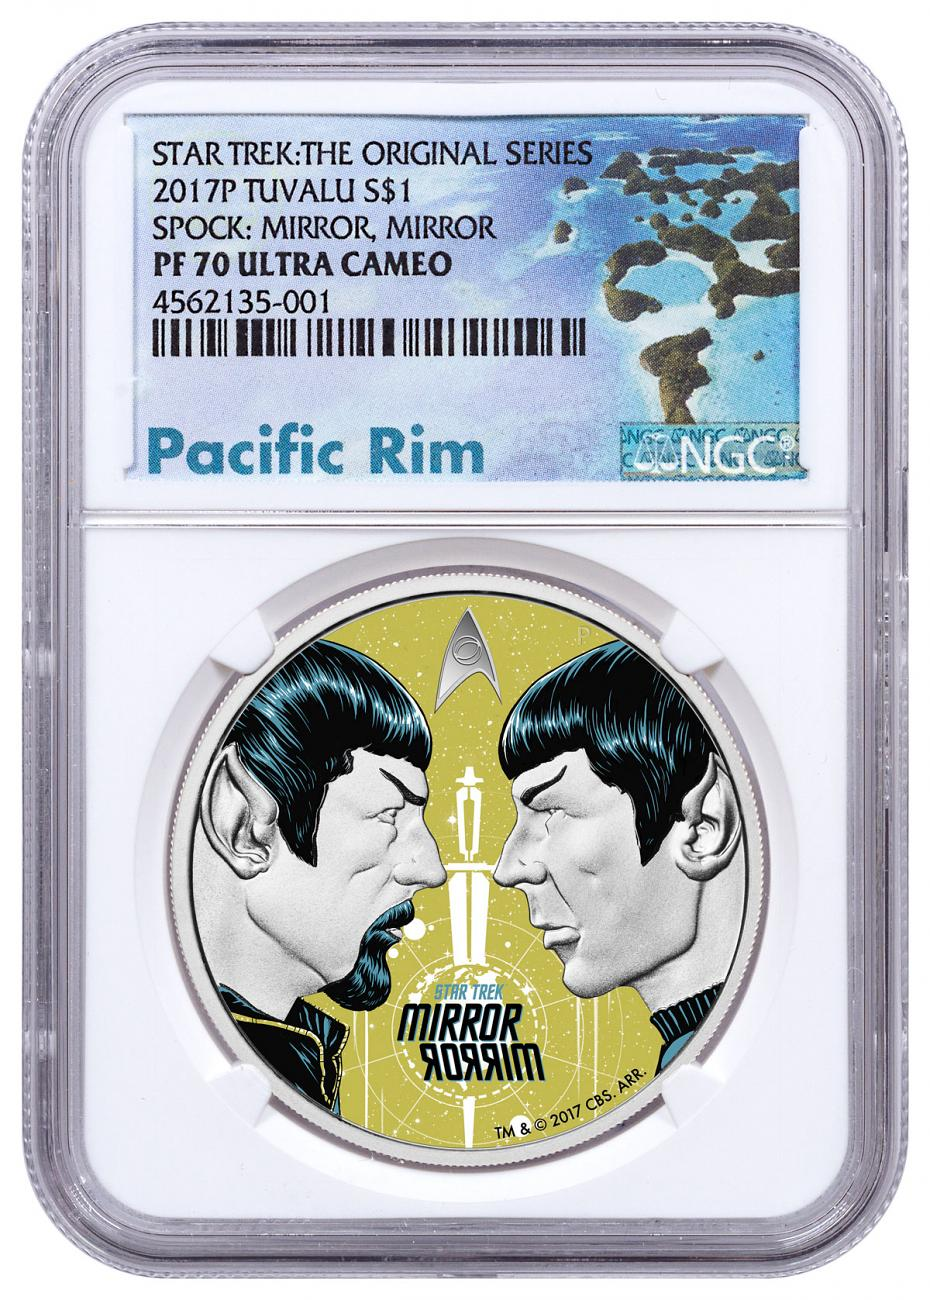 2017 Tuvalu Star Trek - Spock Mirror, Mirror 1 oz Silver Colorized Proof $1 Coin NGC PF70 UC Exclusive Pacific Rim Label